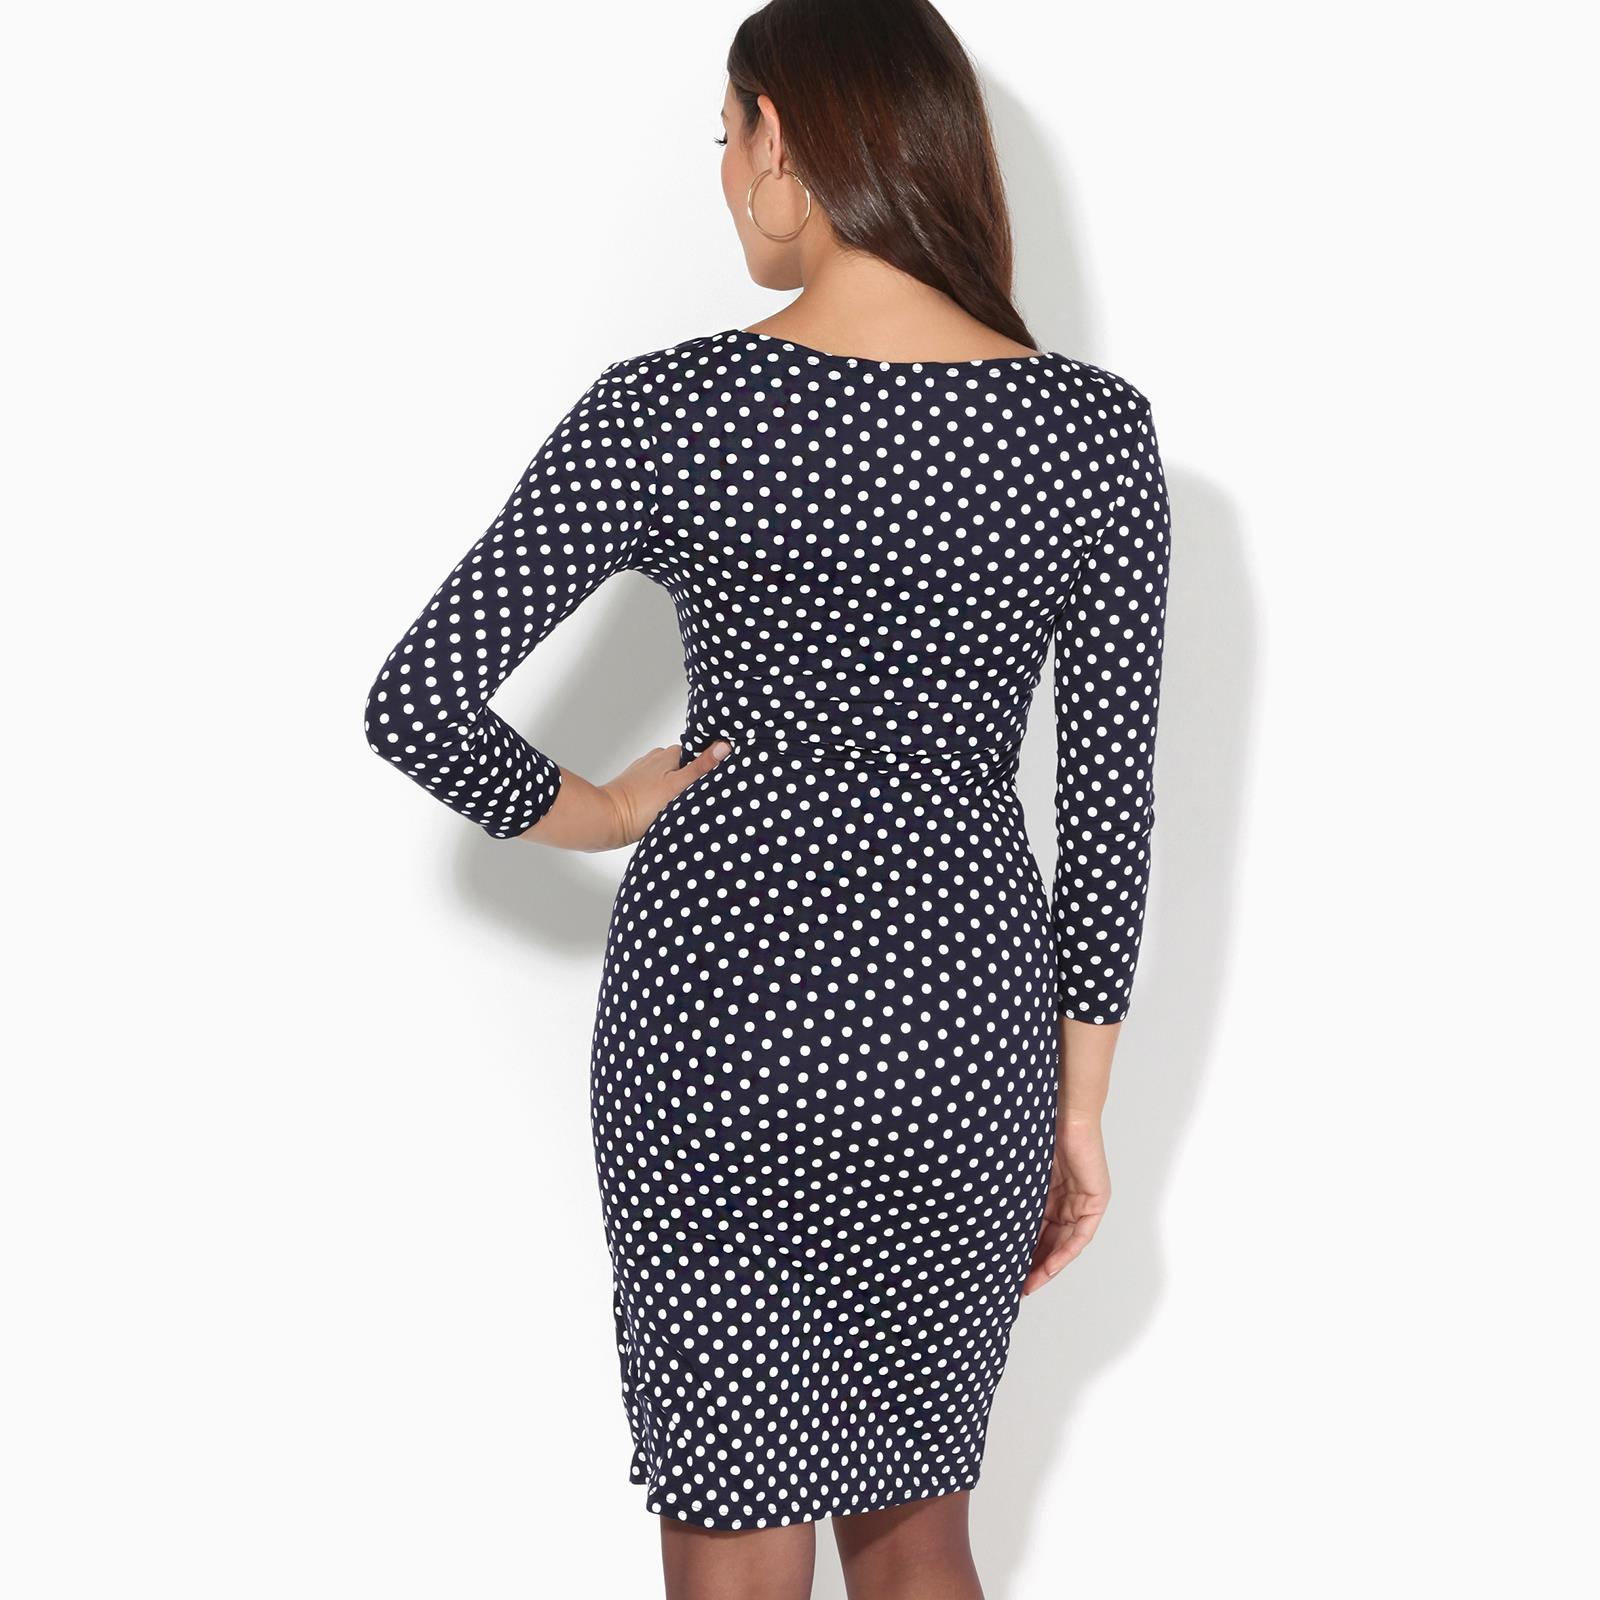 Womens-Polka-Dot-Dress-Pleated-Skirt-Wrap-Front-Midi-V-Neck-Top-Swing-Party thumbnail 19